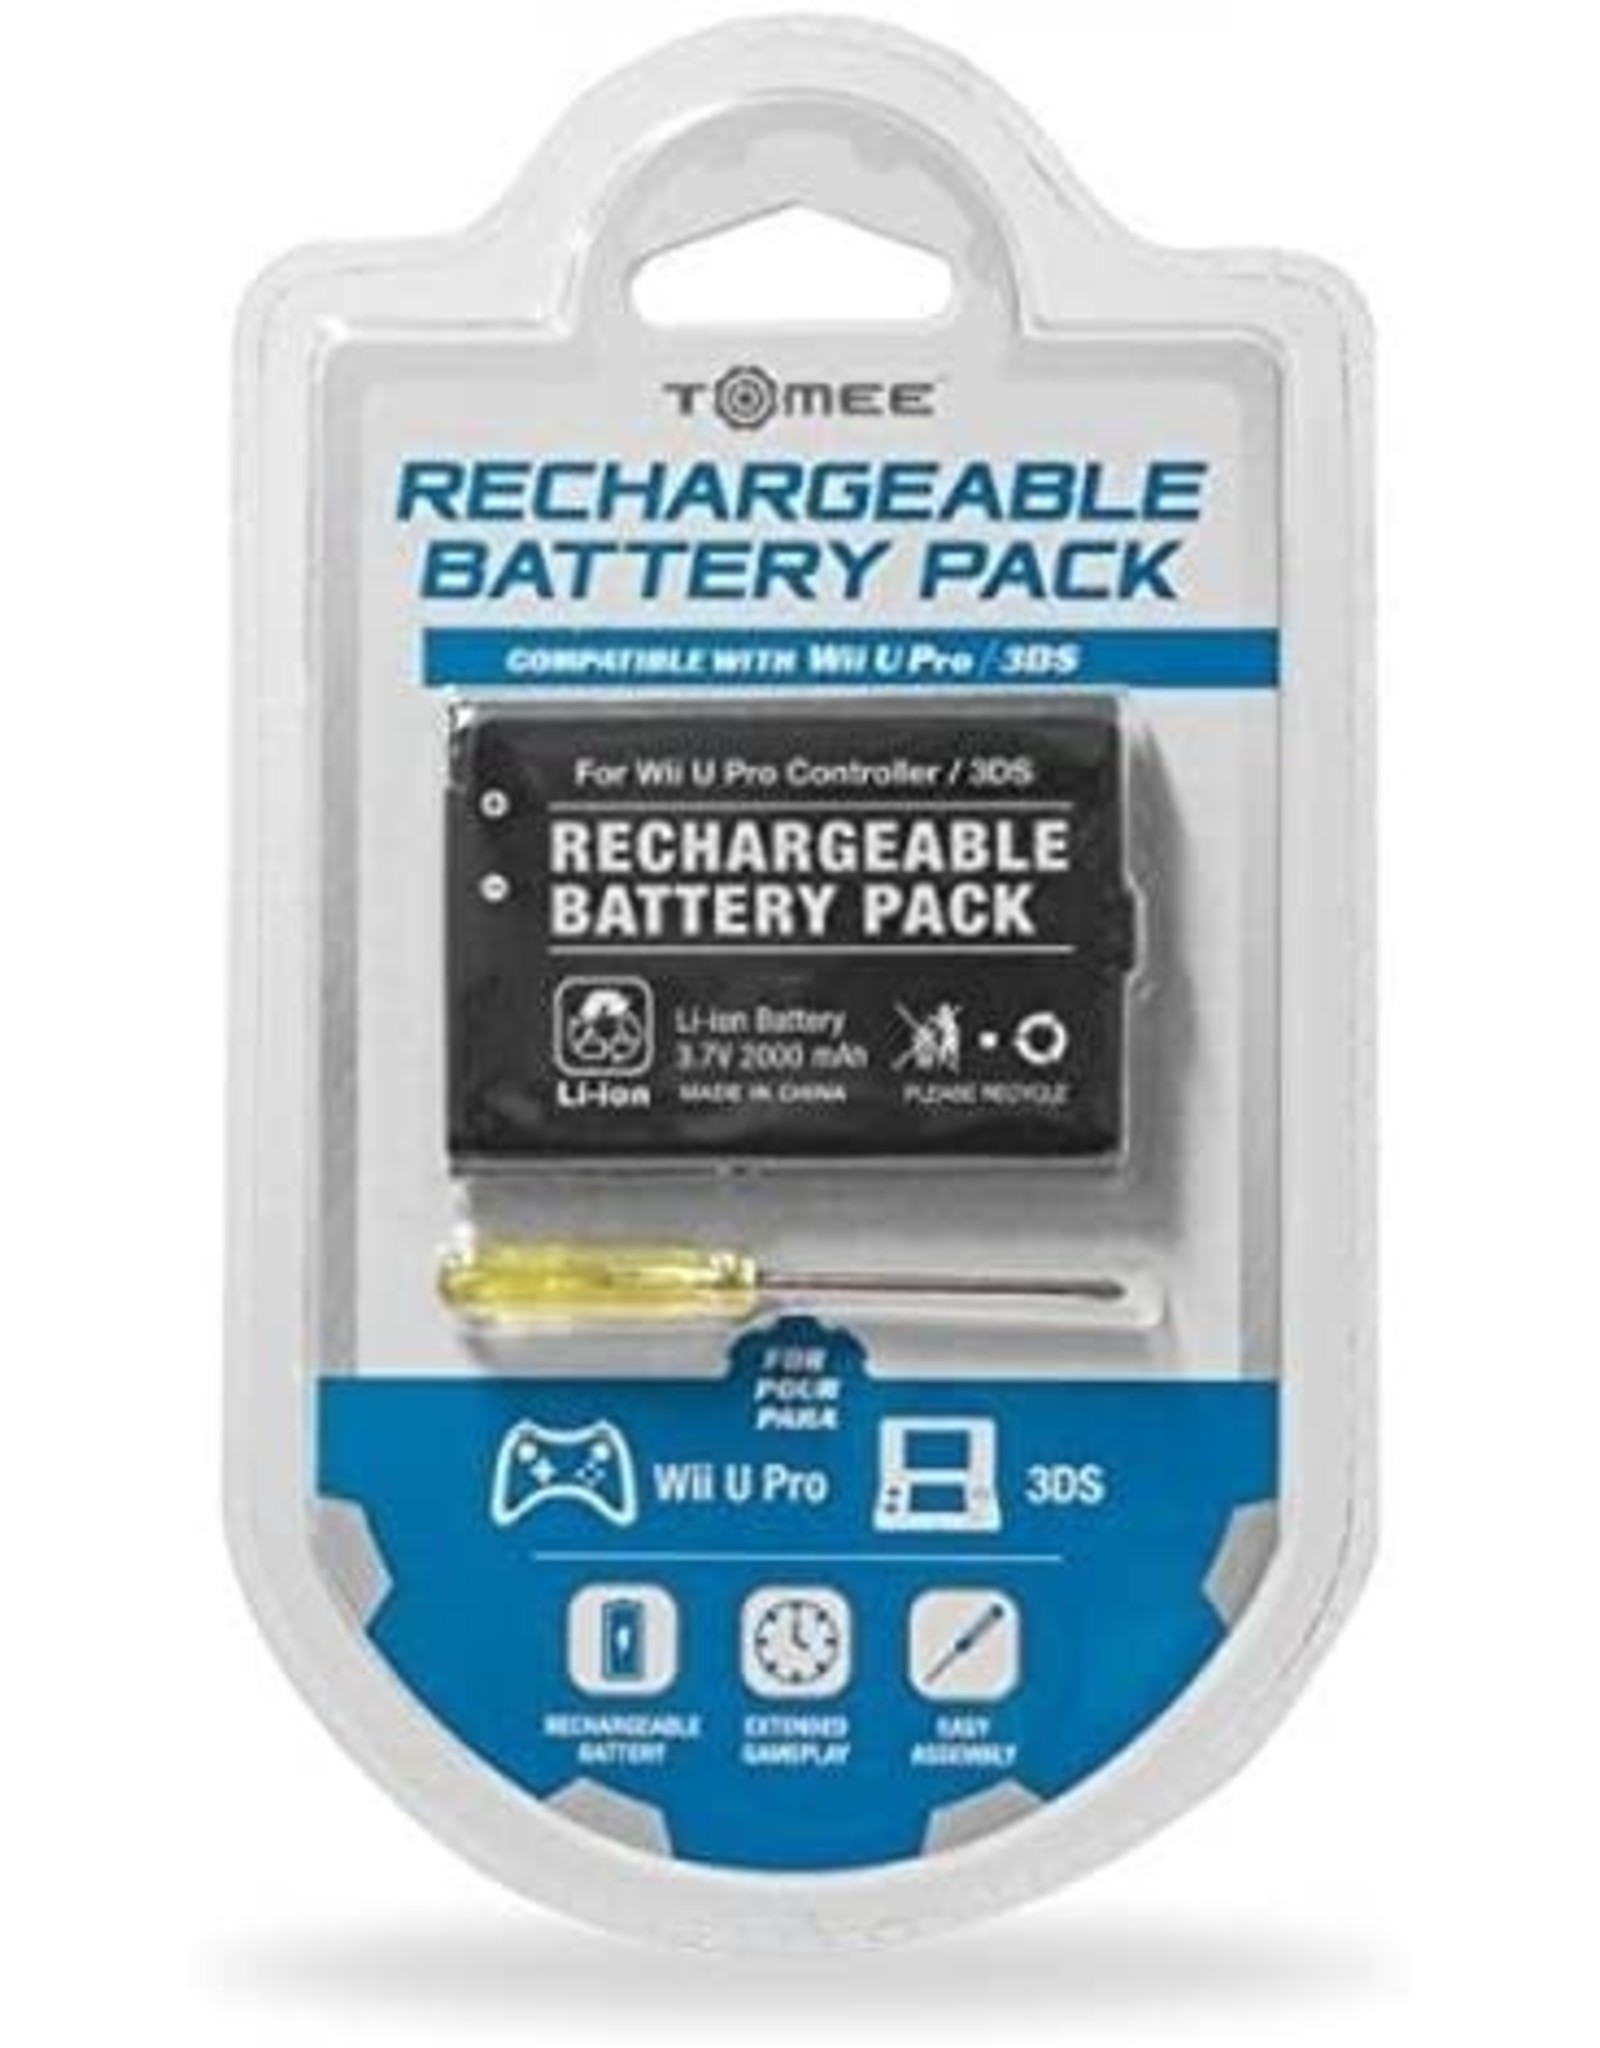 Nintendo DS Nintendo 3DS Wii U Pro Controller Replacement Battery (Tomee)